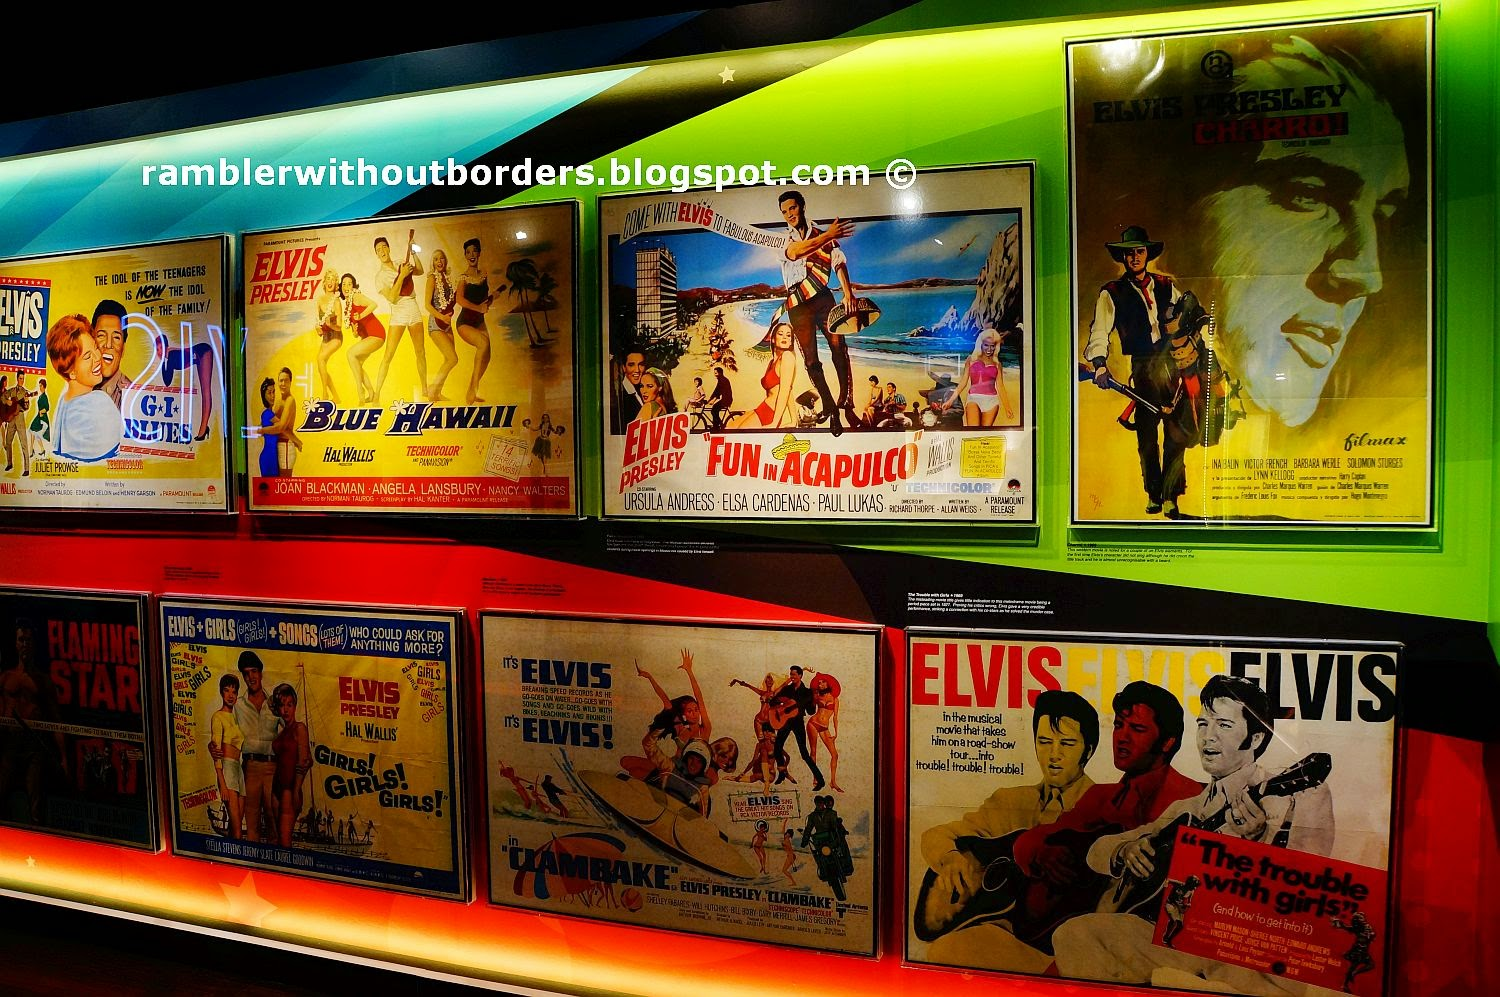 Albums of Elvis Presley